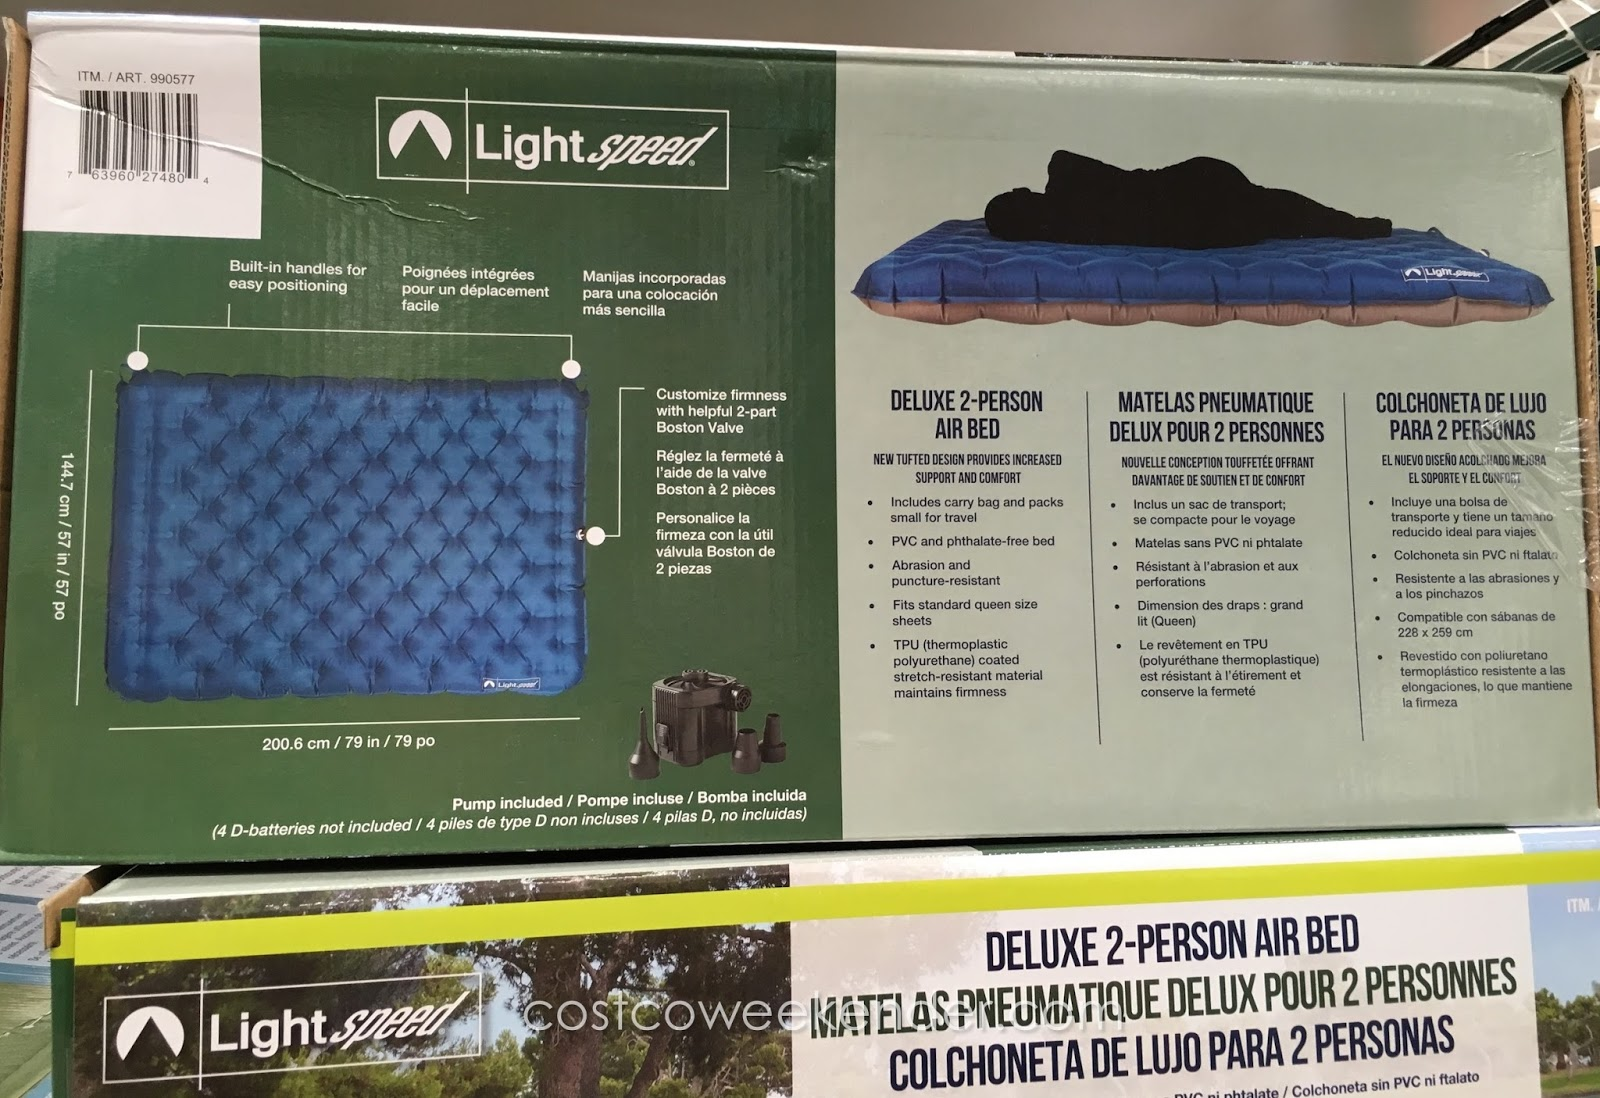 Lightspeed Deluxe 2 Person Airbed Costco Weekender